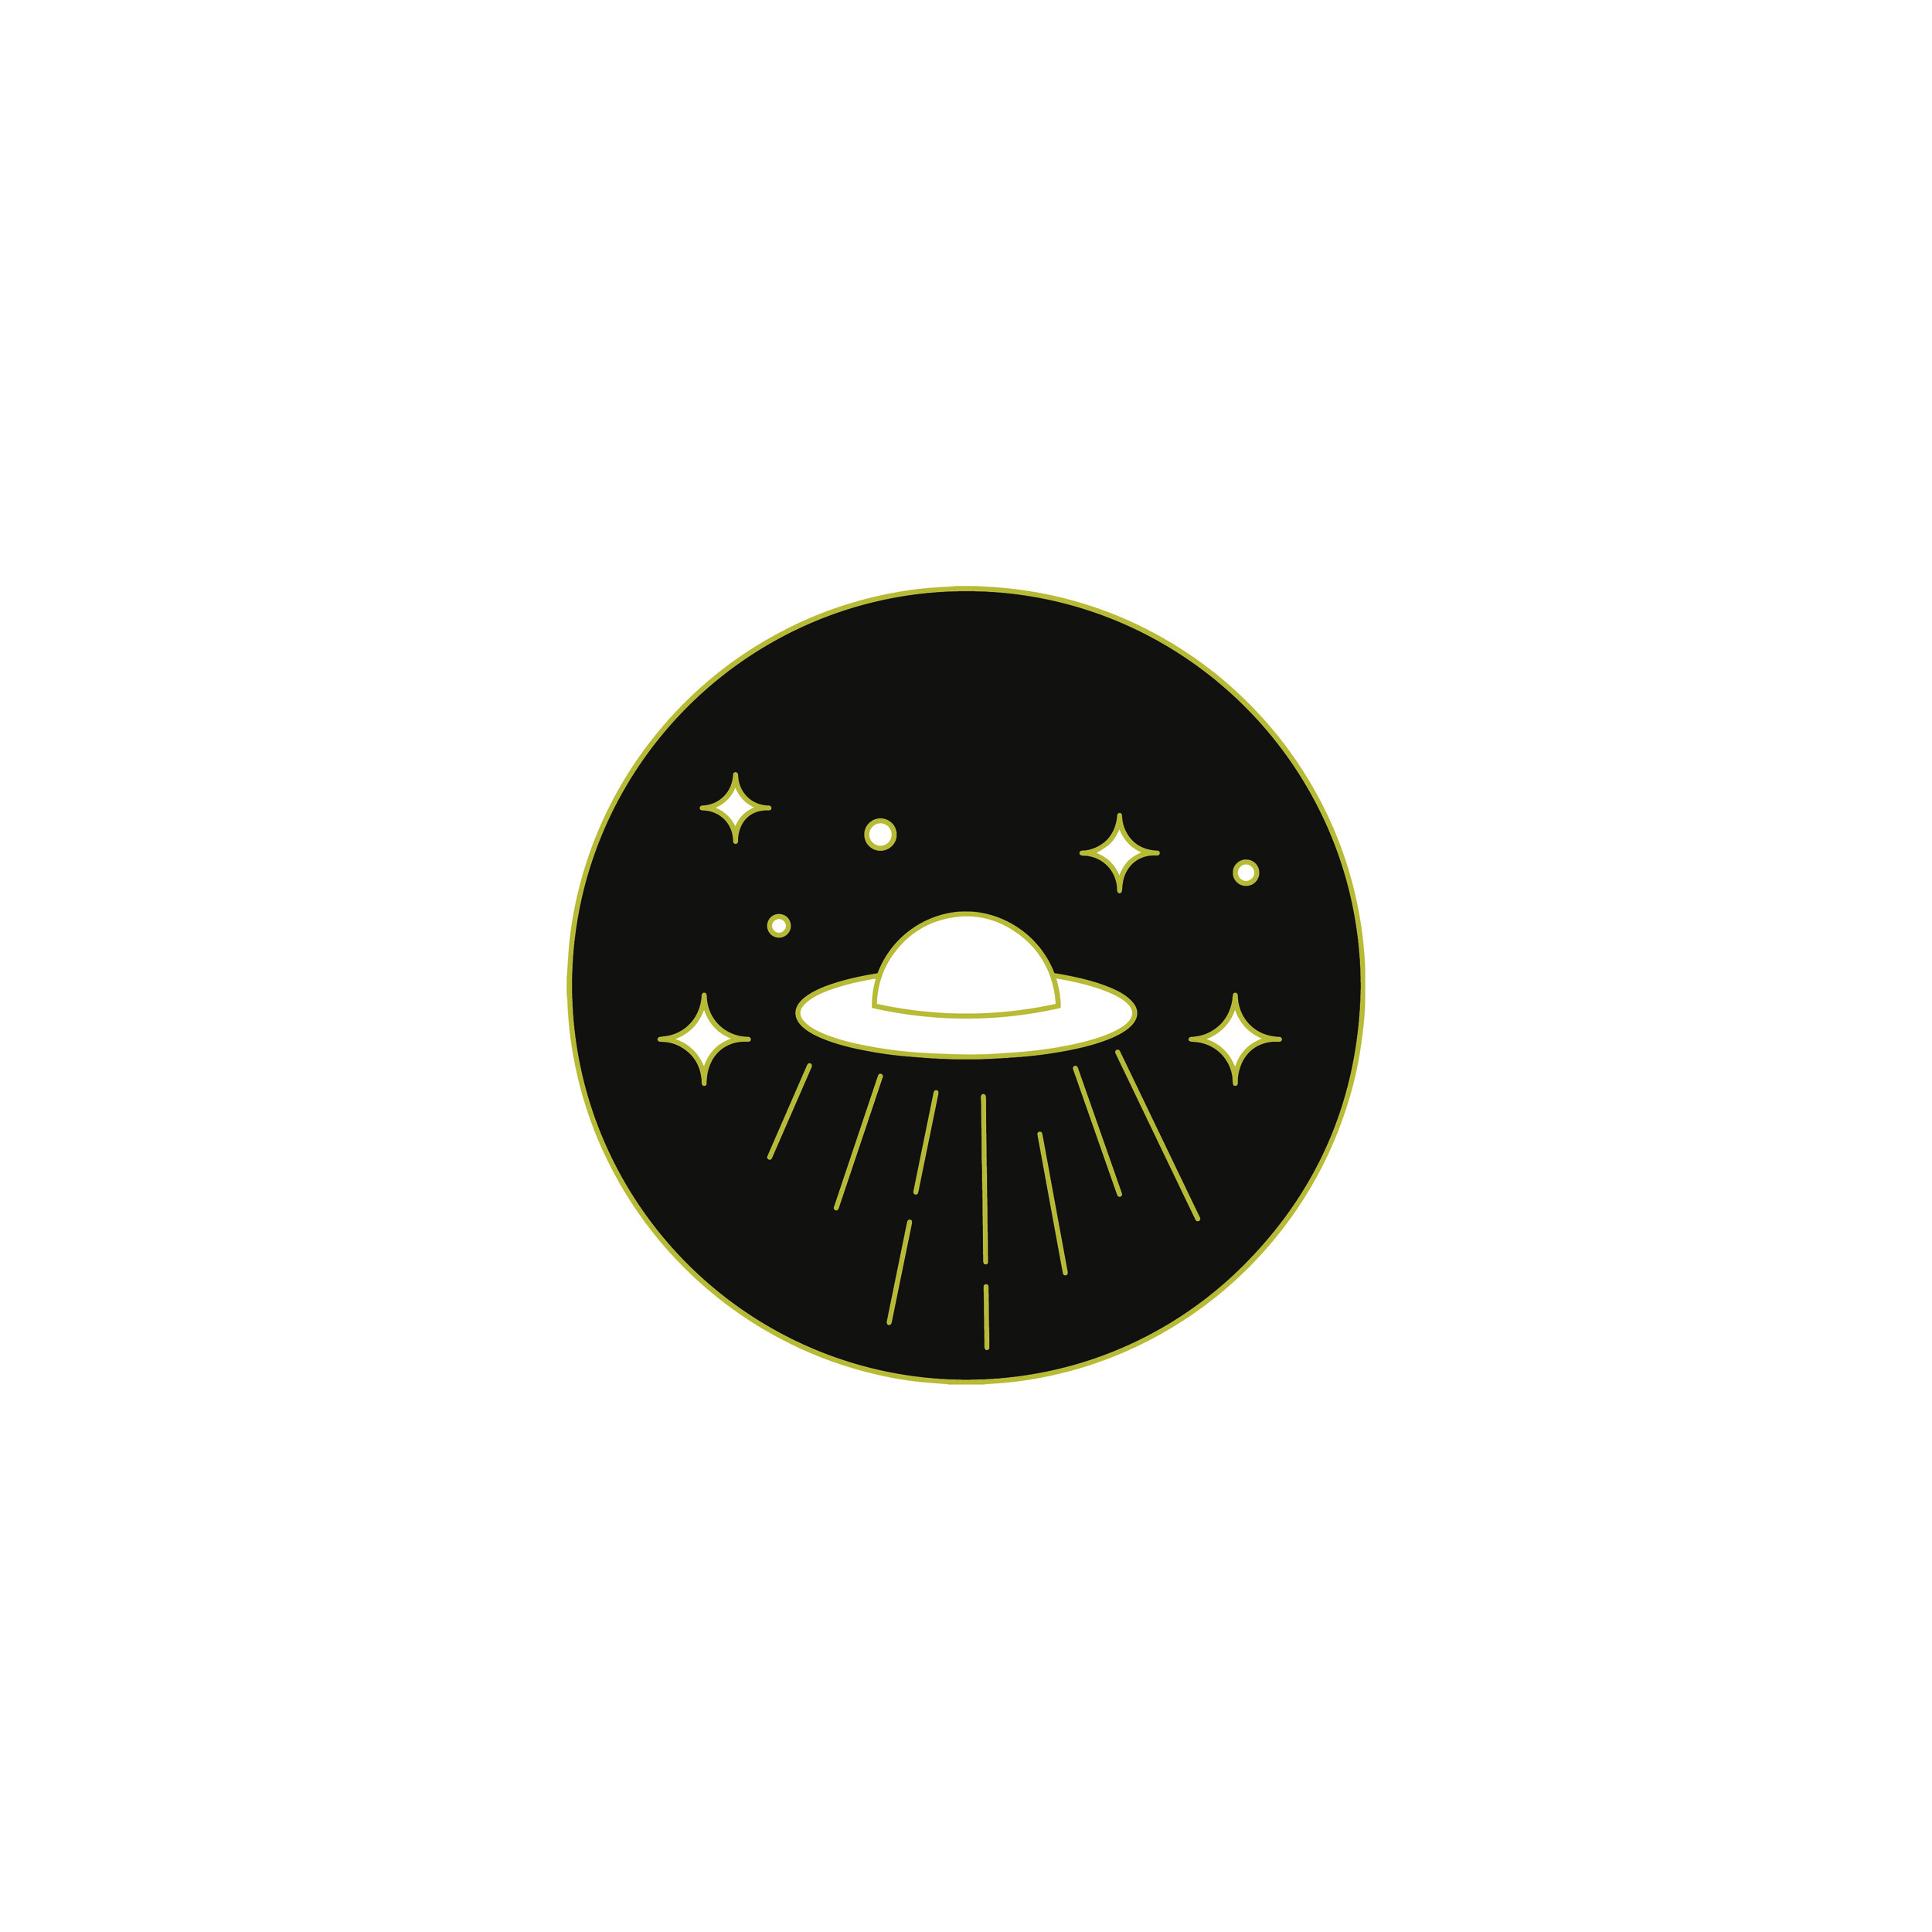 - Visit our sister company: SPACEDOUT.STUDIO